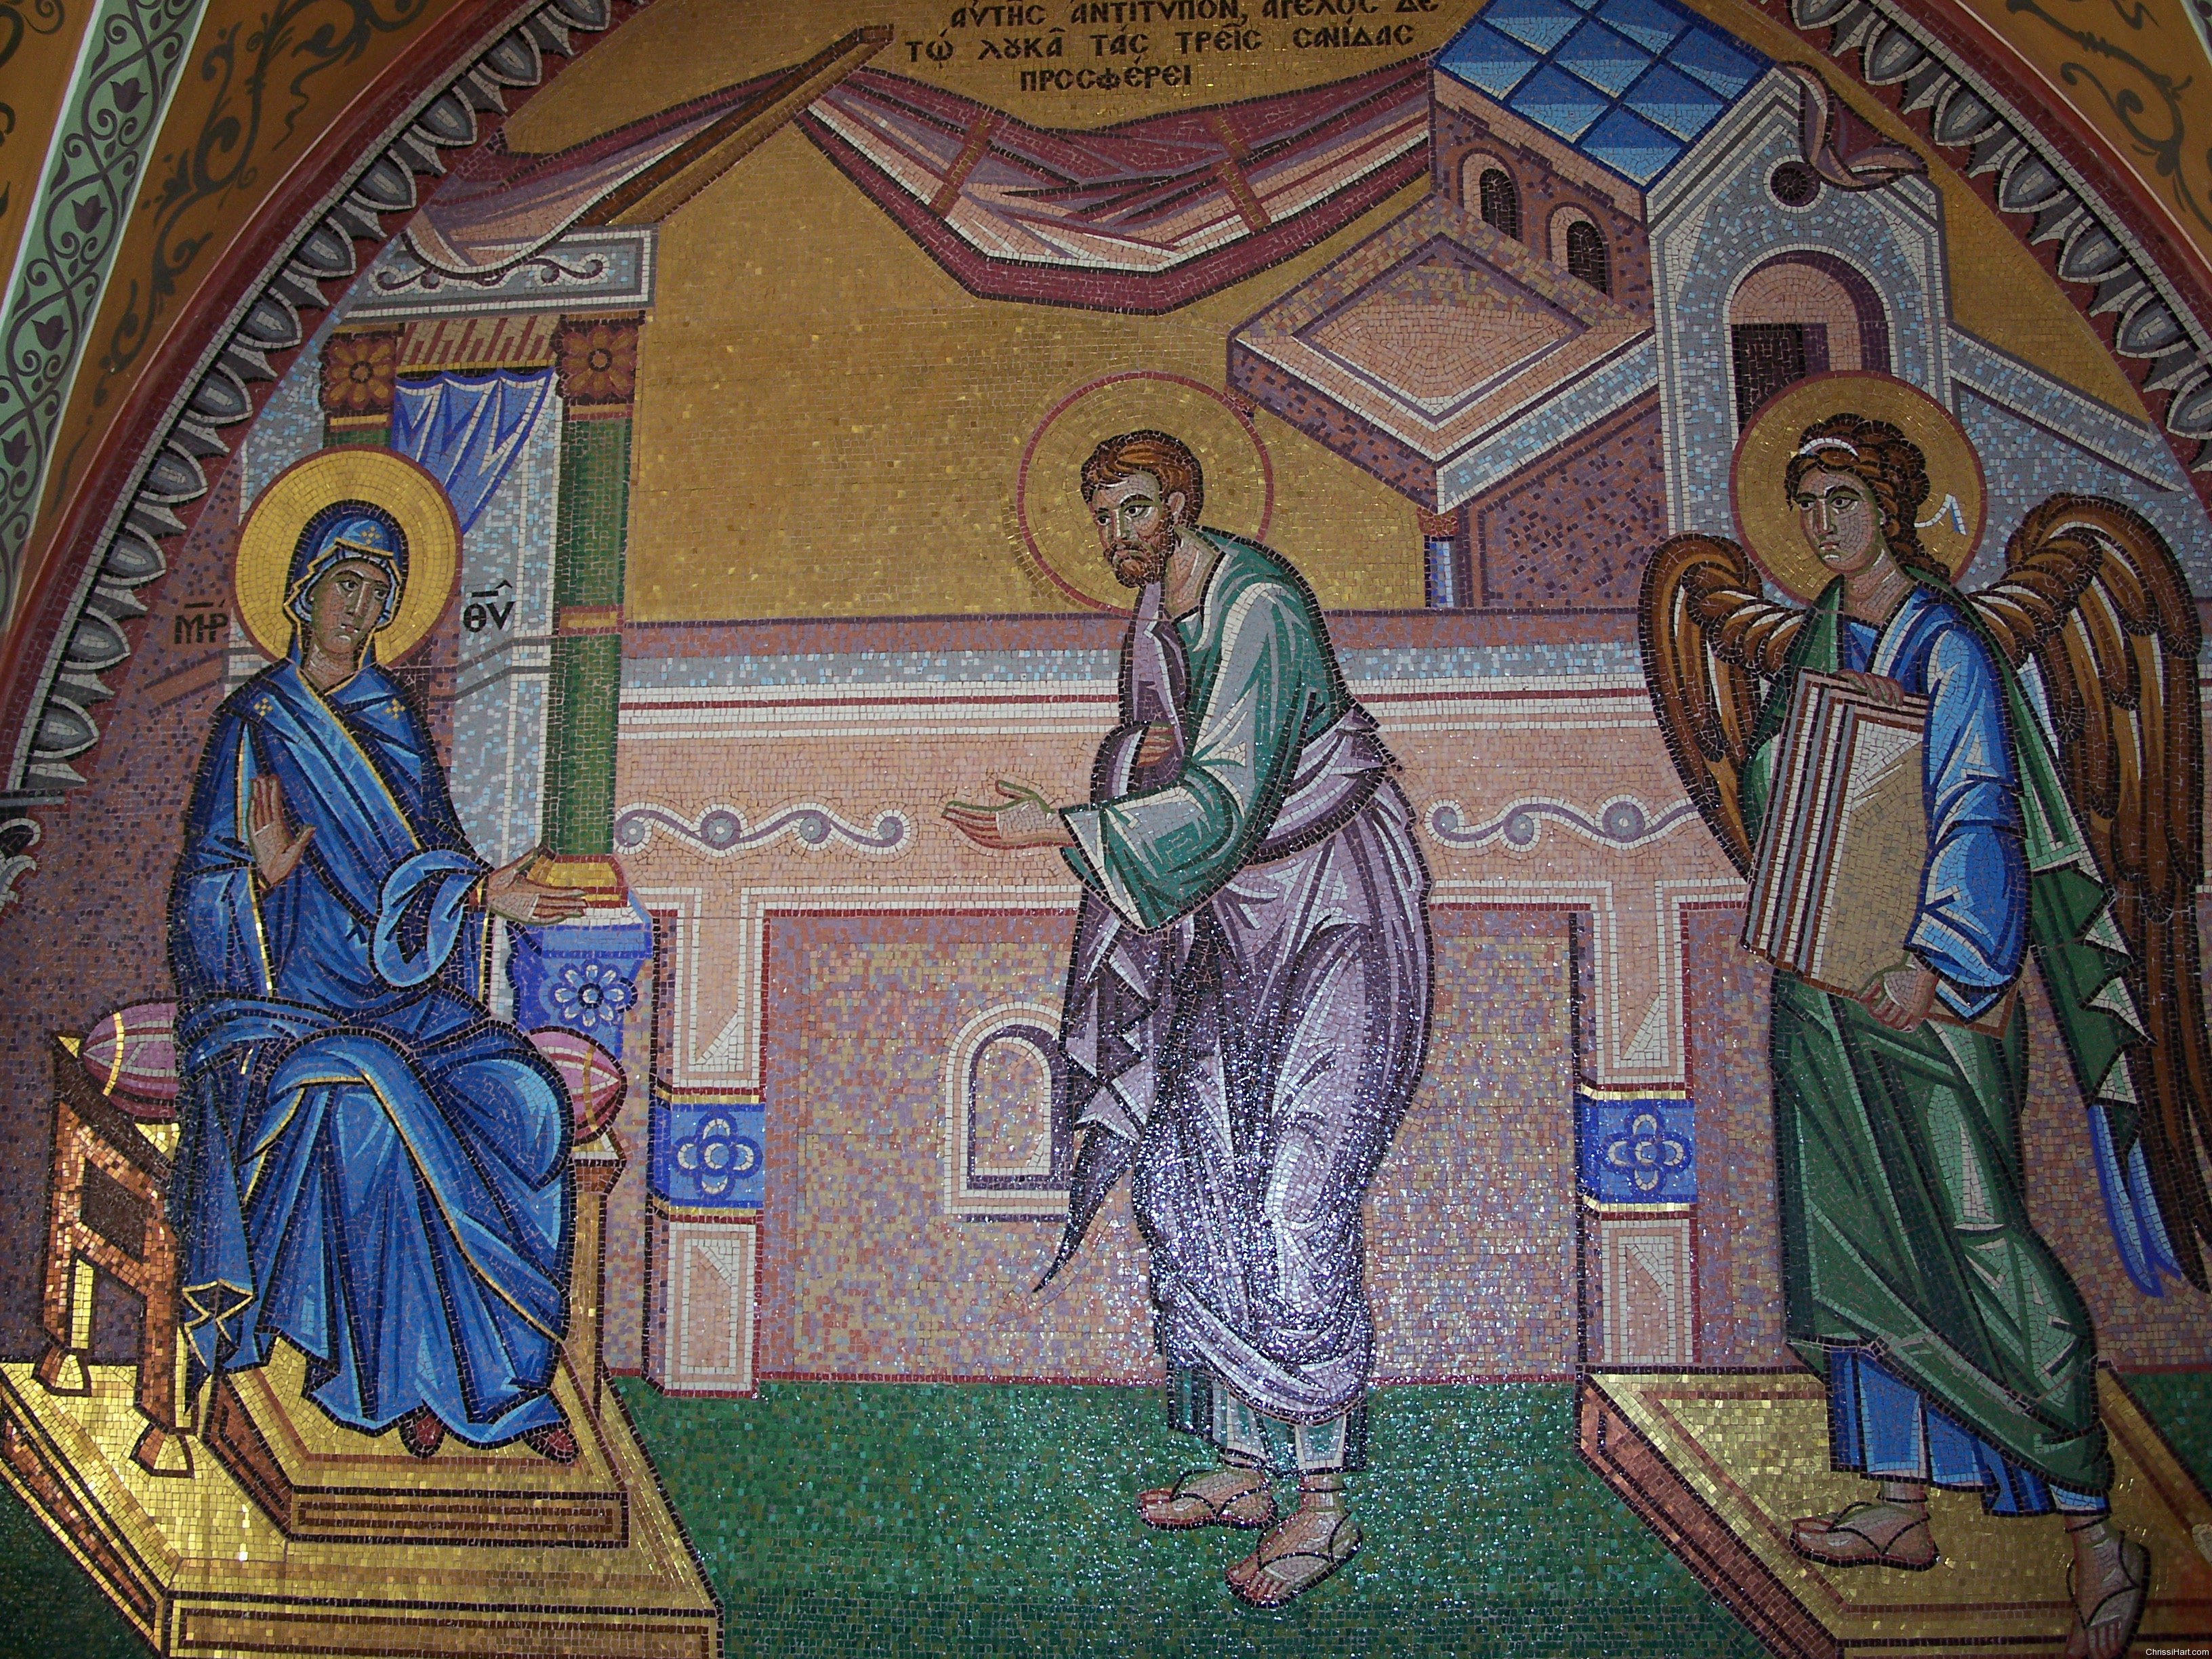 Theotokos commissions  St Luke to paint her,  Archangel Gabriel supplies three boards 5